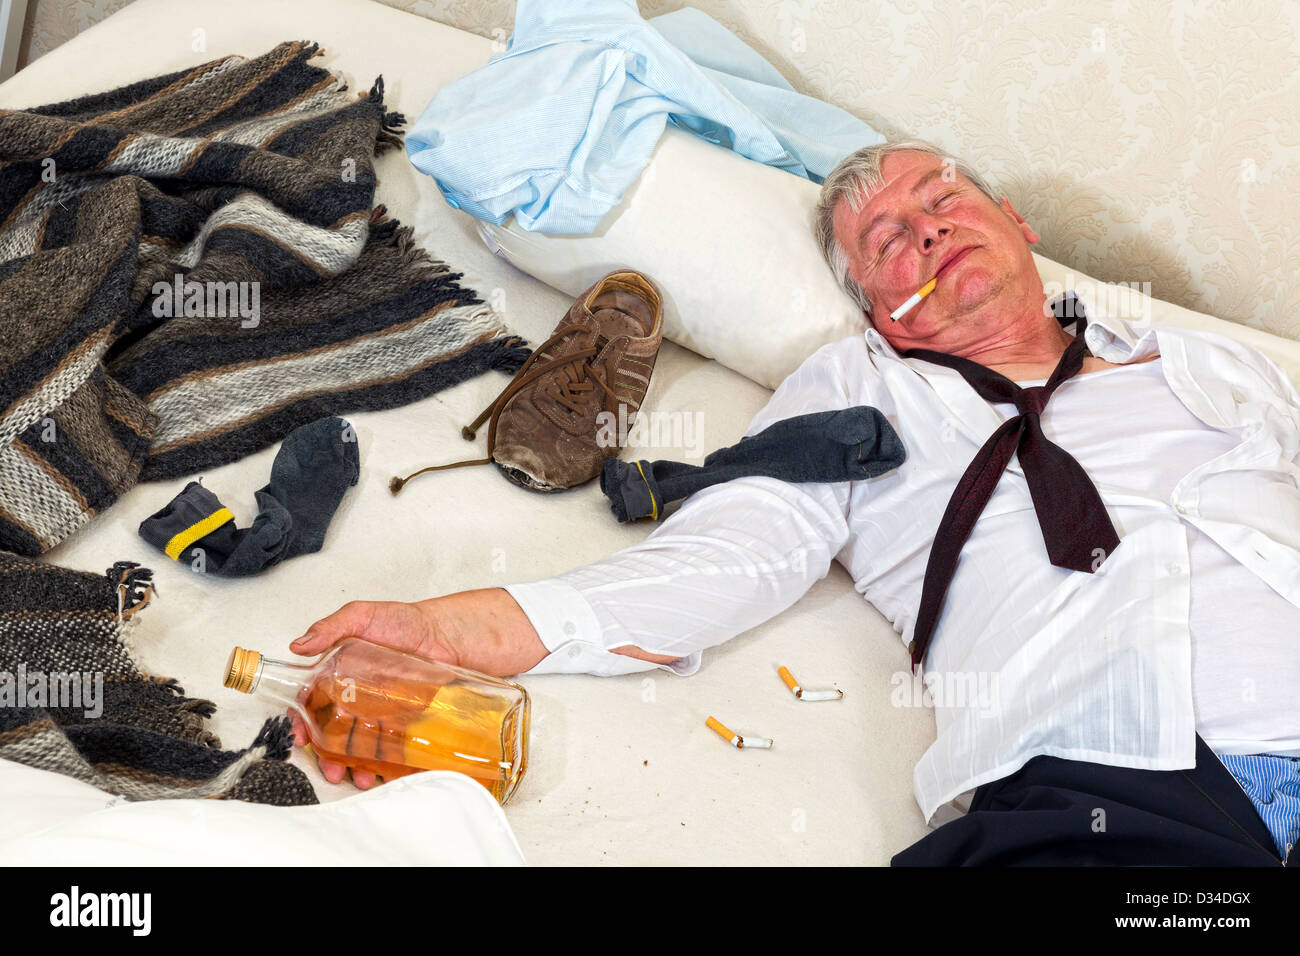 Drunken alcoholic sleeping in a messy bed - Stock Image